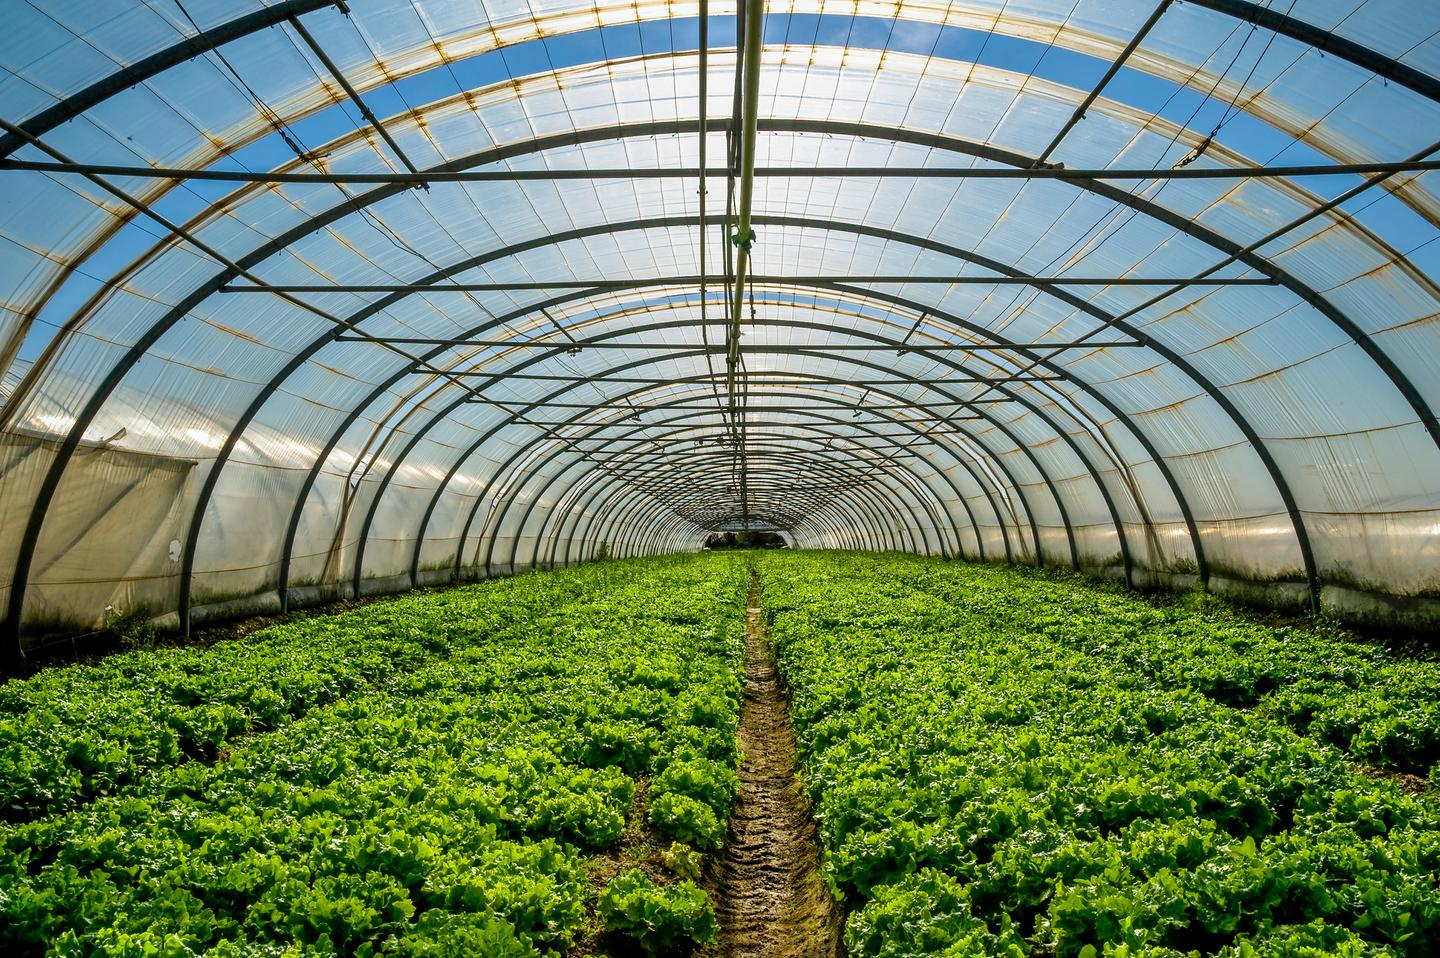 A new study has found that crops can grow in greenhouses with built-in transparent solar cells